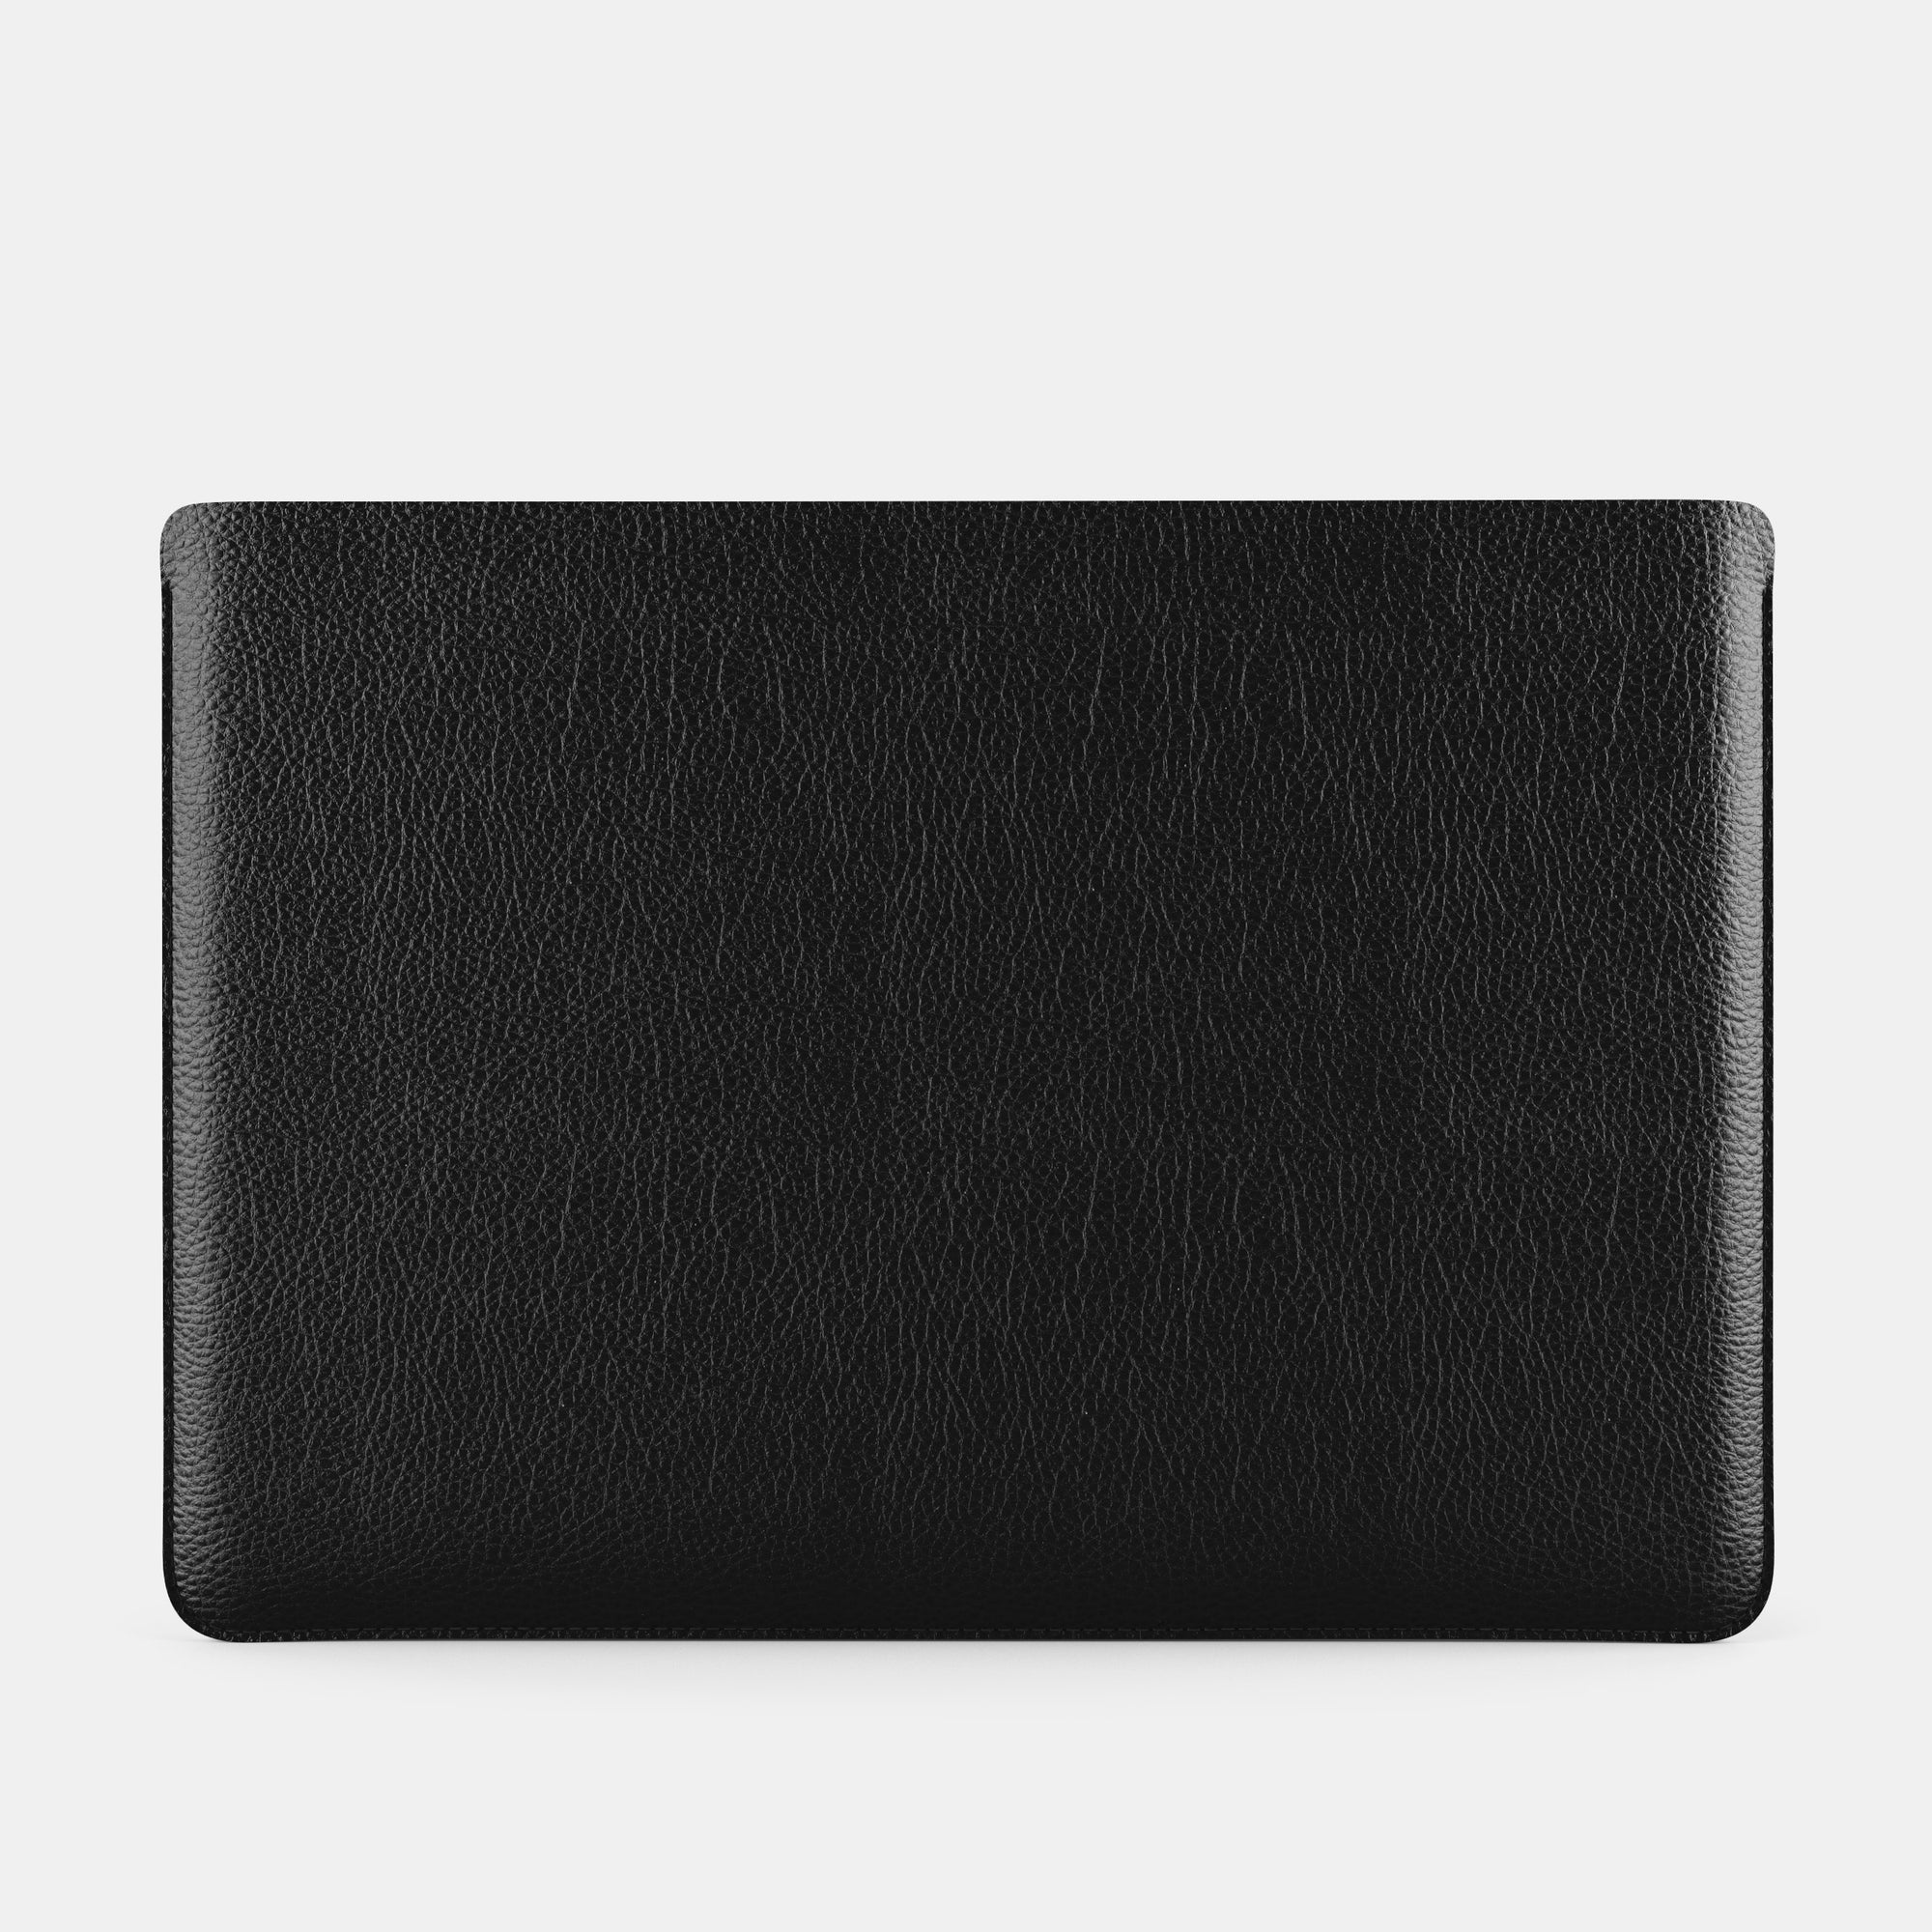 Laptop Sleeve - RYAN London